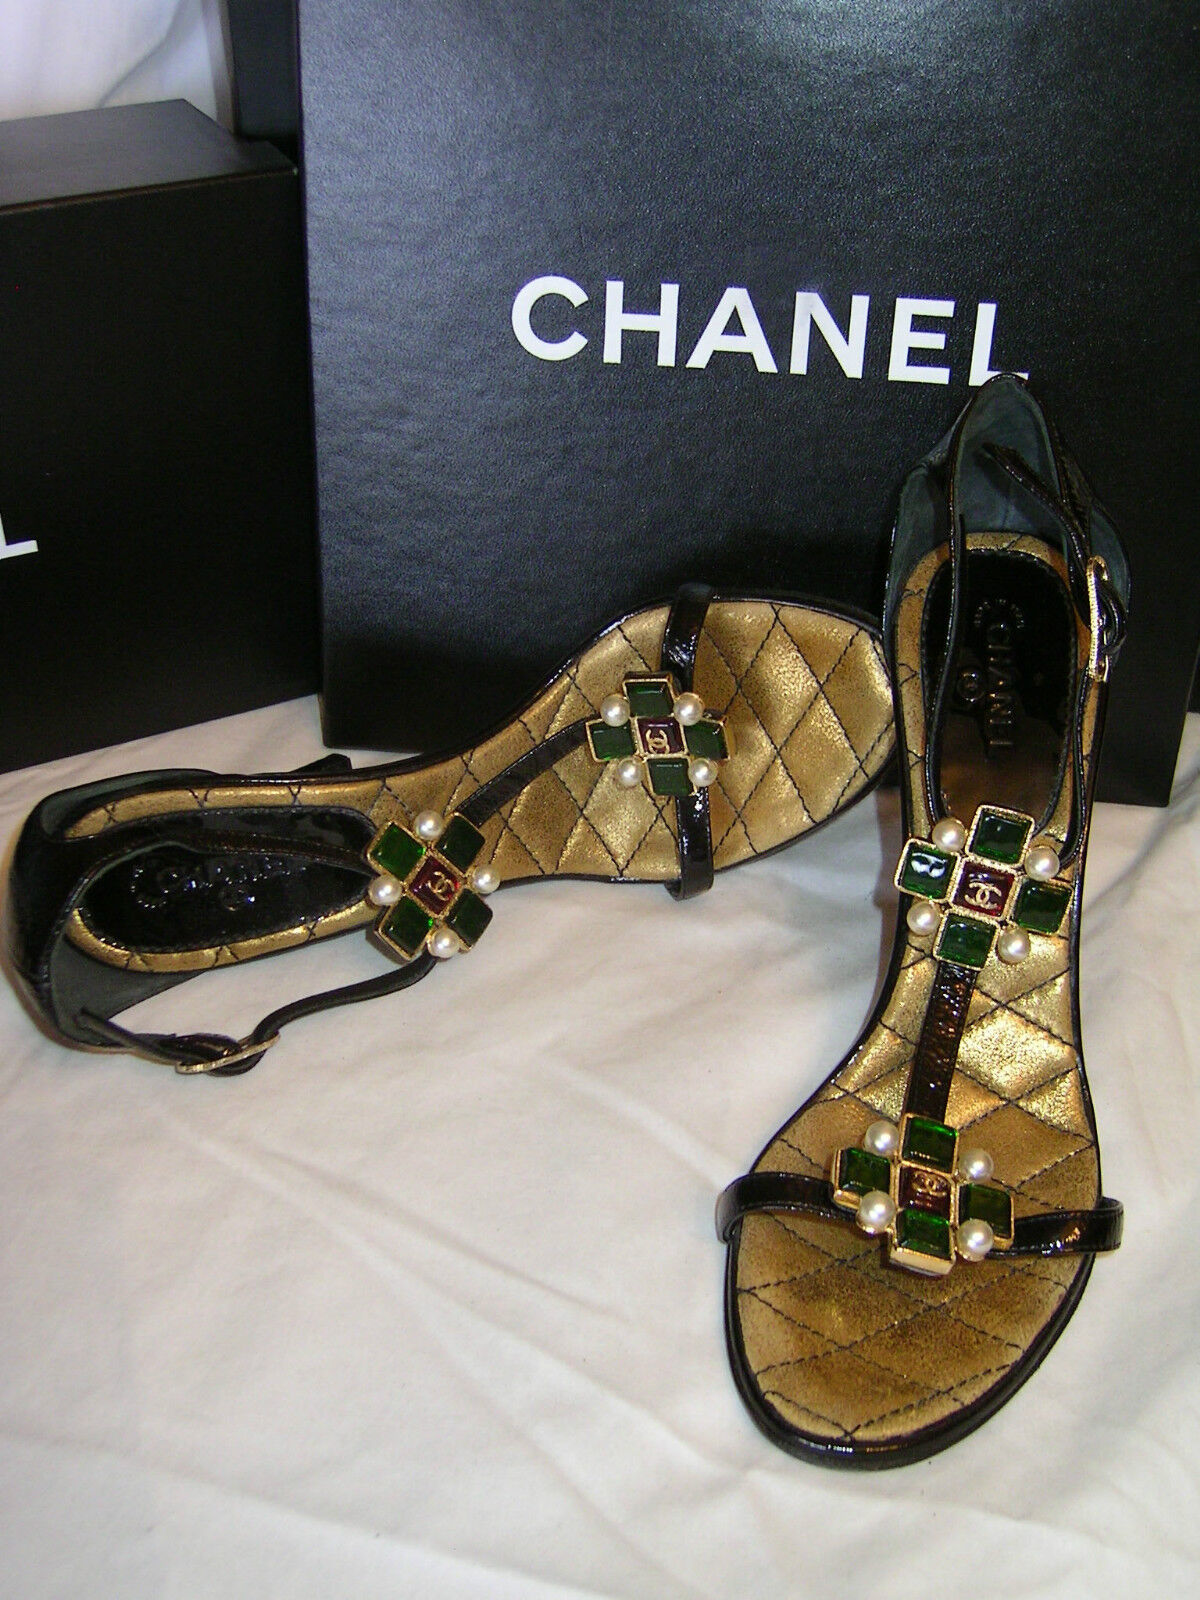 CHANEL Patent Leather SHOES Gripoix Pearls MALTESE CROSS T Strap D'Orsay Sandals